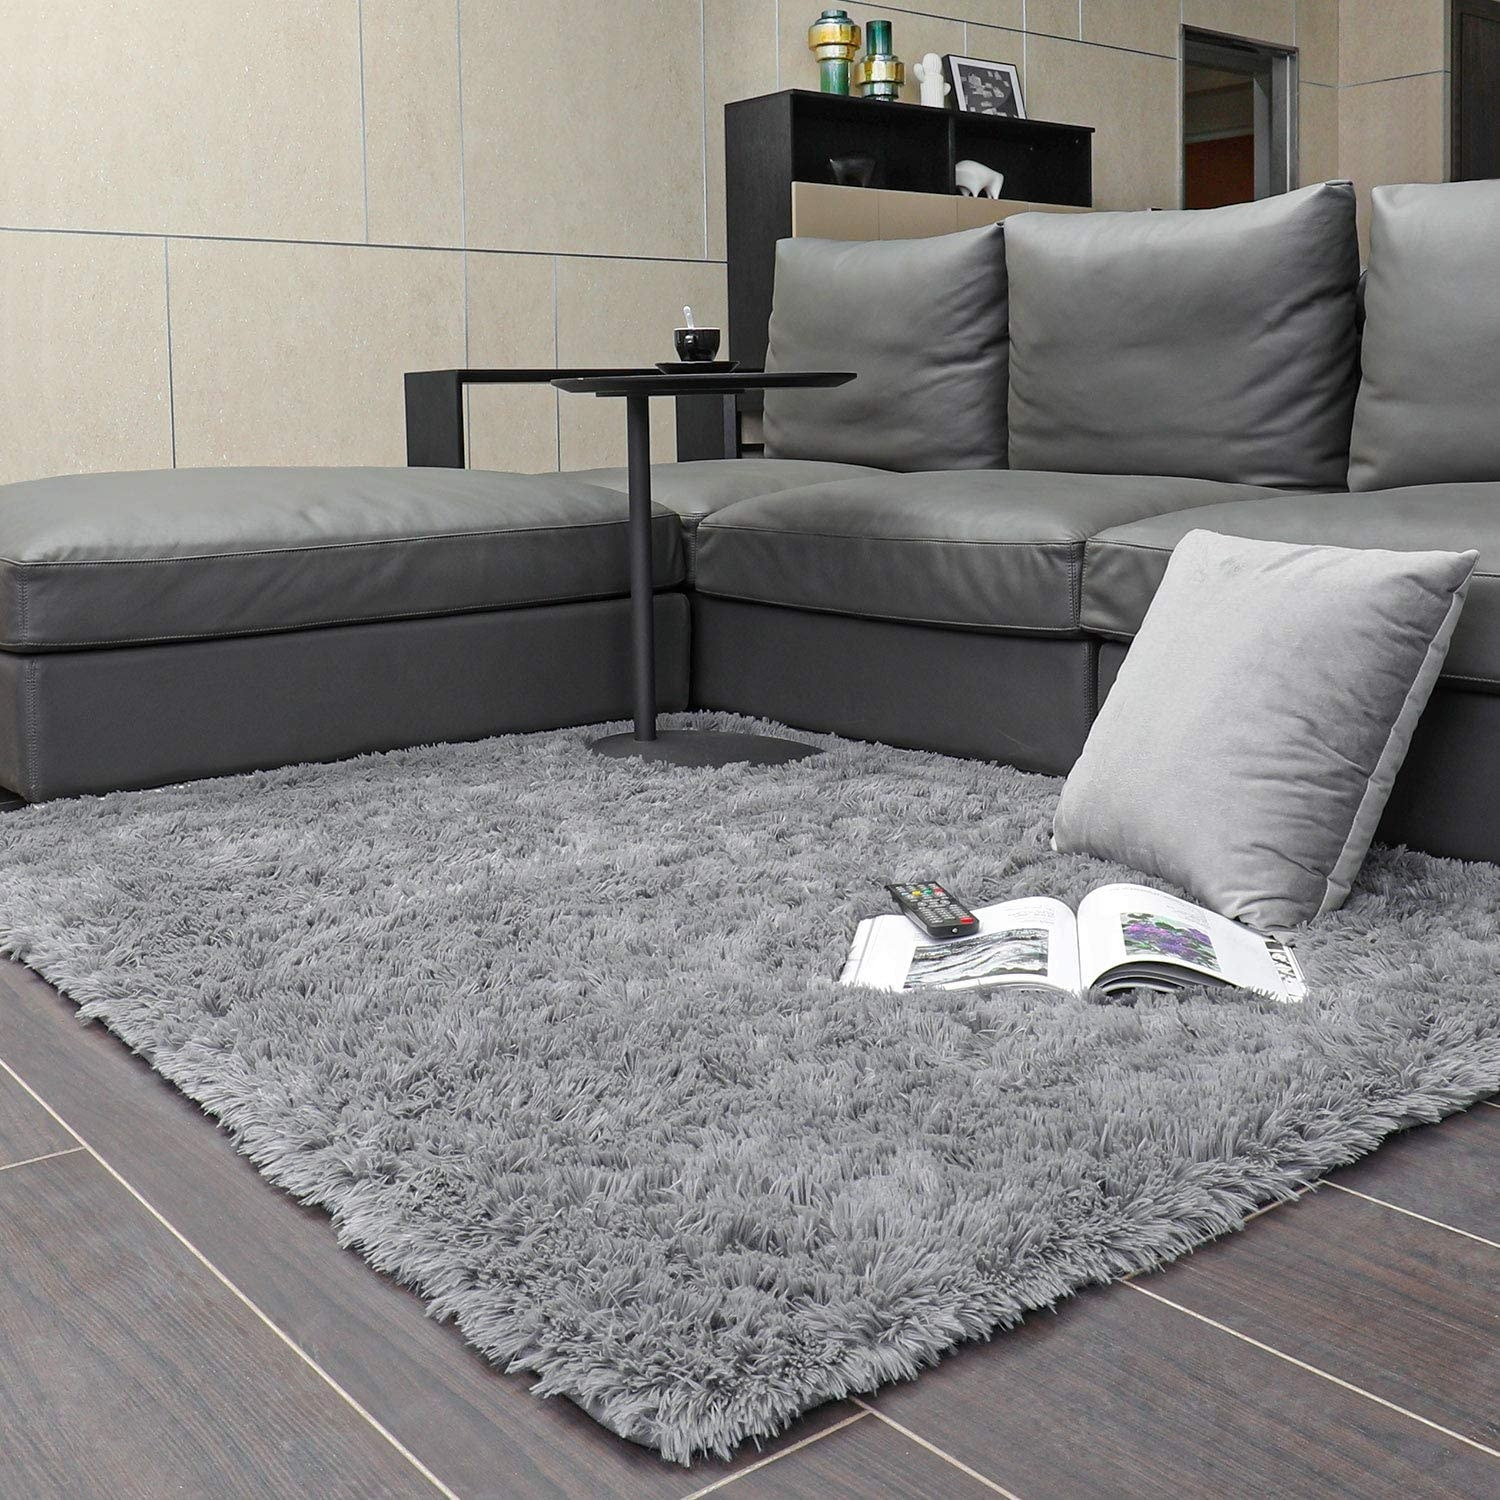 Gray shag rug in a living room